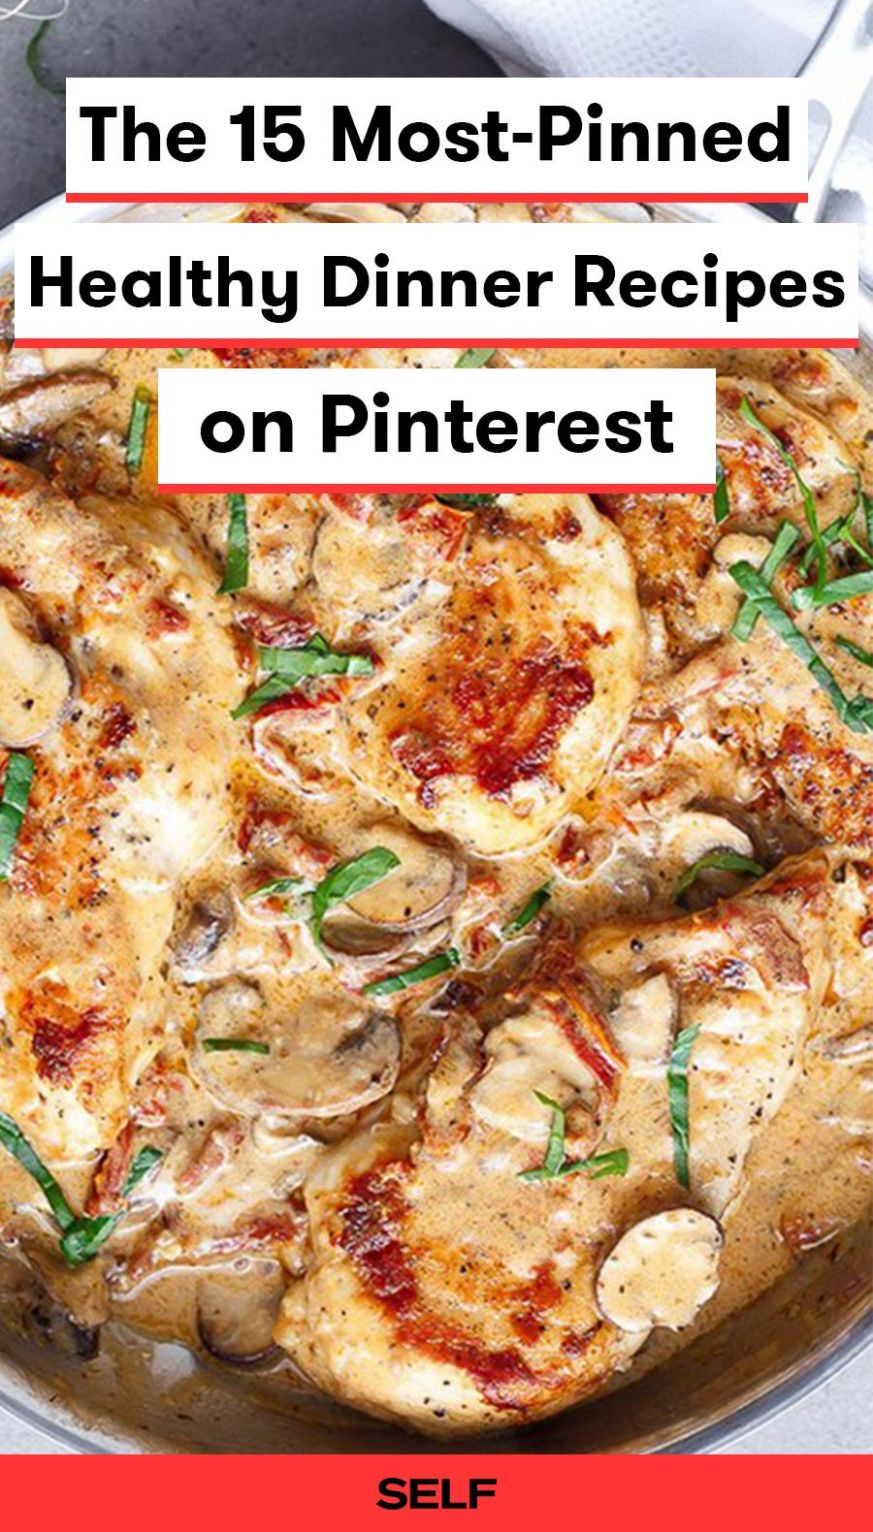 The 10 Most-Pinned Healthy Dinner Recipes on Pinterest | Heathly ..